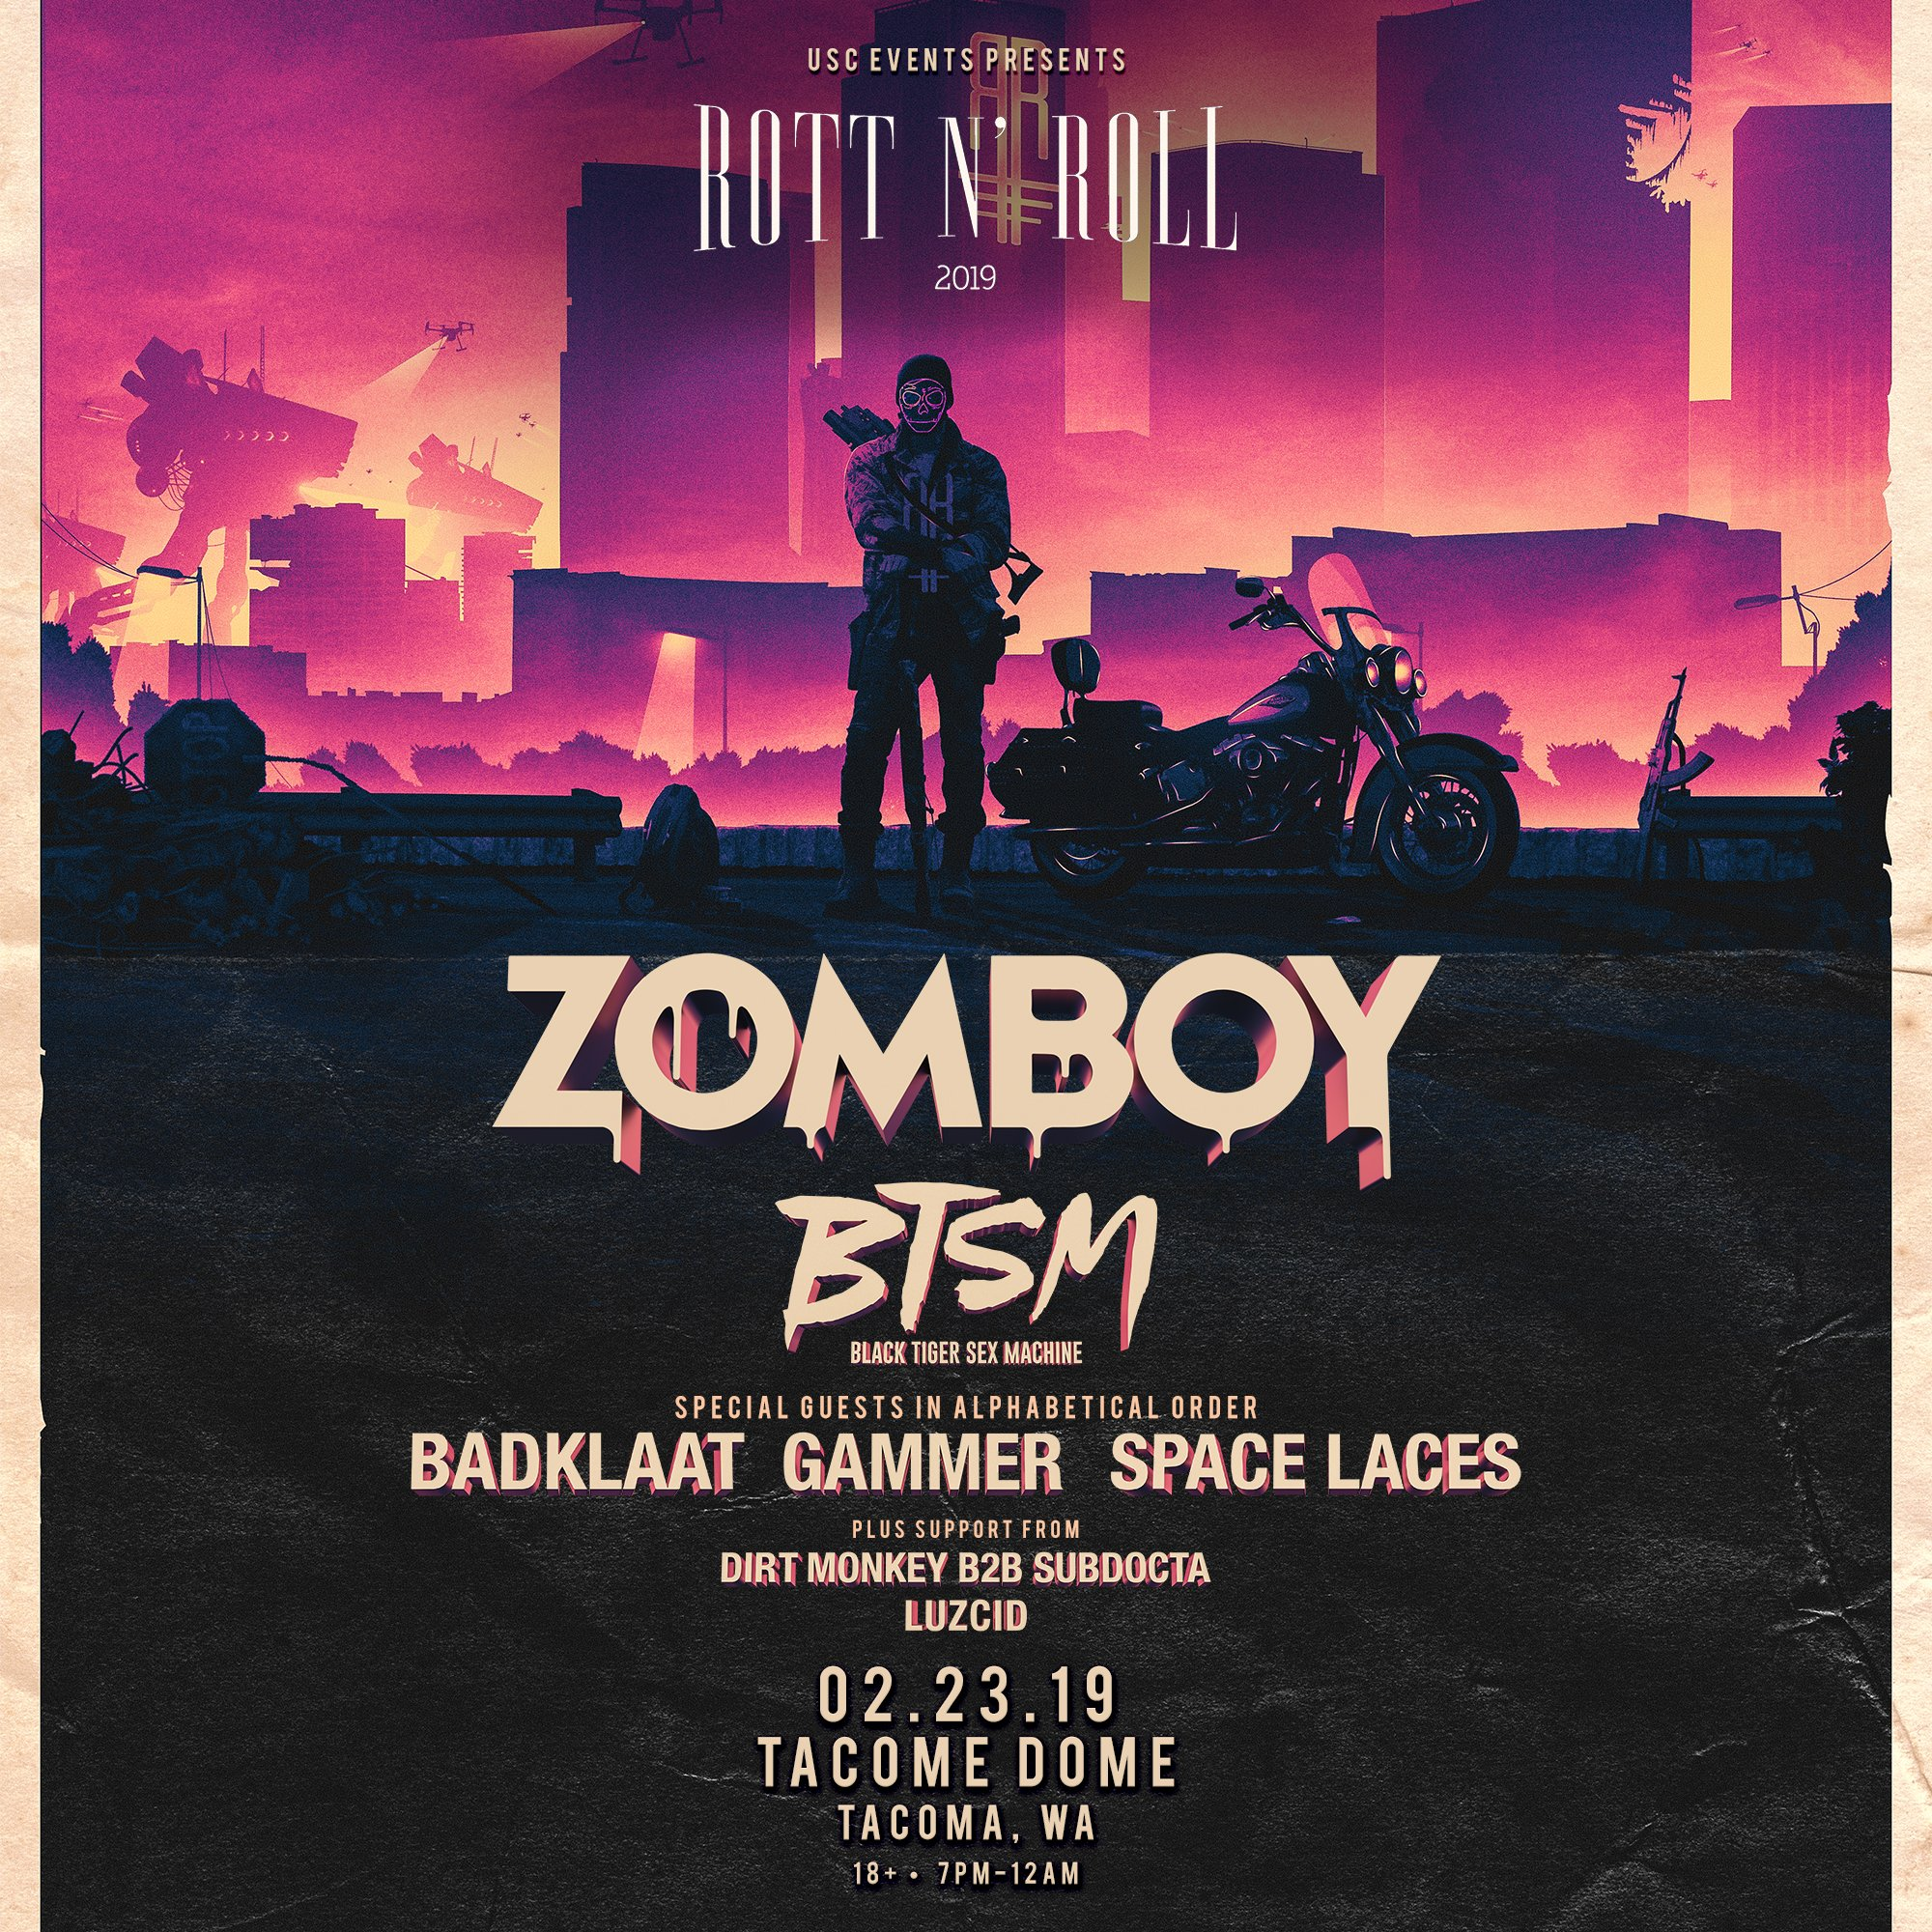 Zomboy with BTSM, Badklaat, Gammer, Space Laces, Dirty Monkey, Subdocta & Luzcid